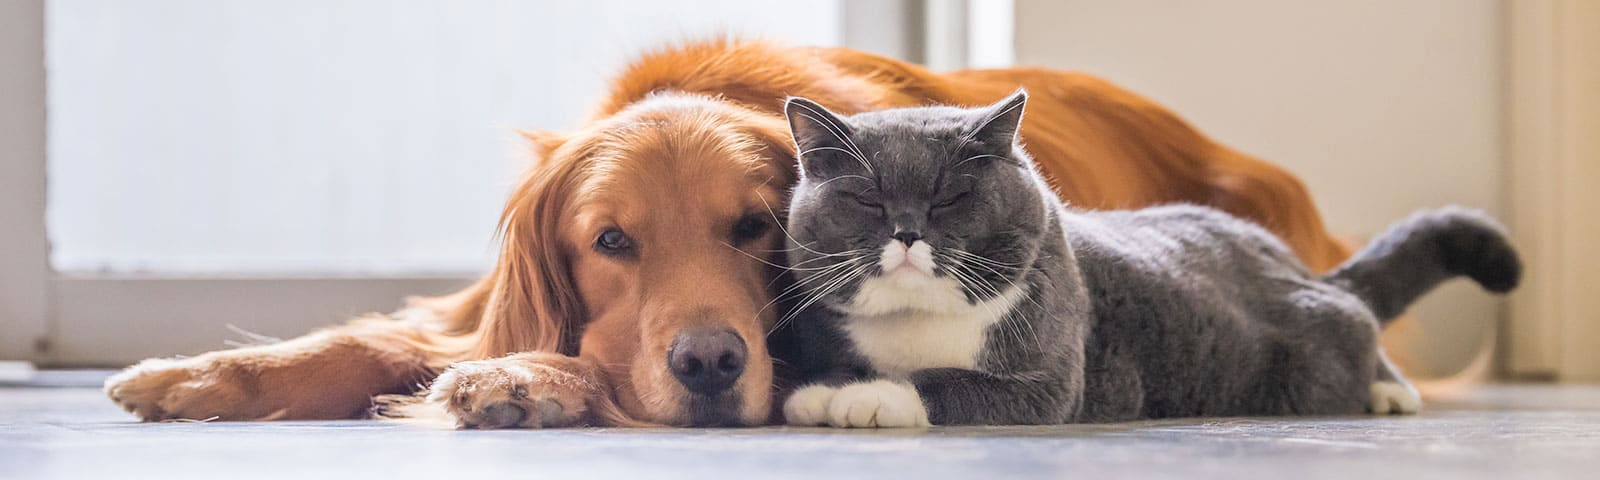 Dog and Cat laying down together